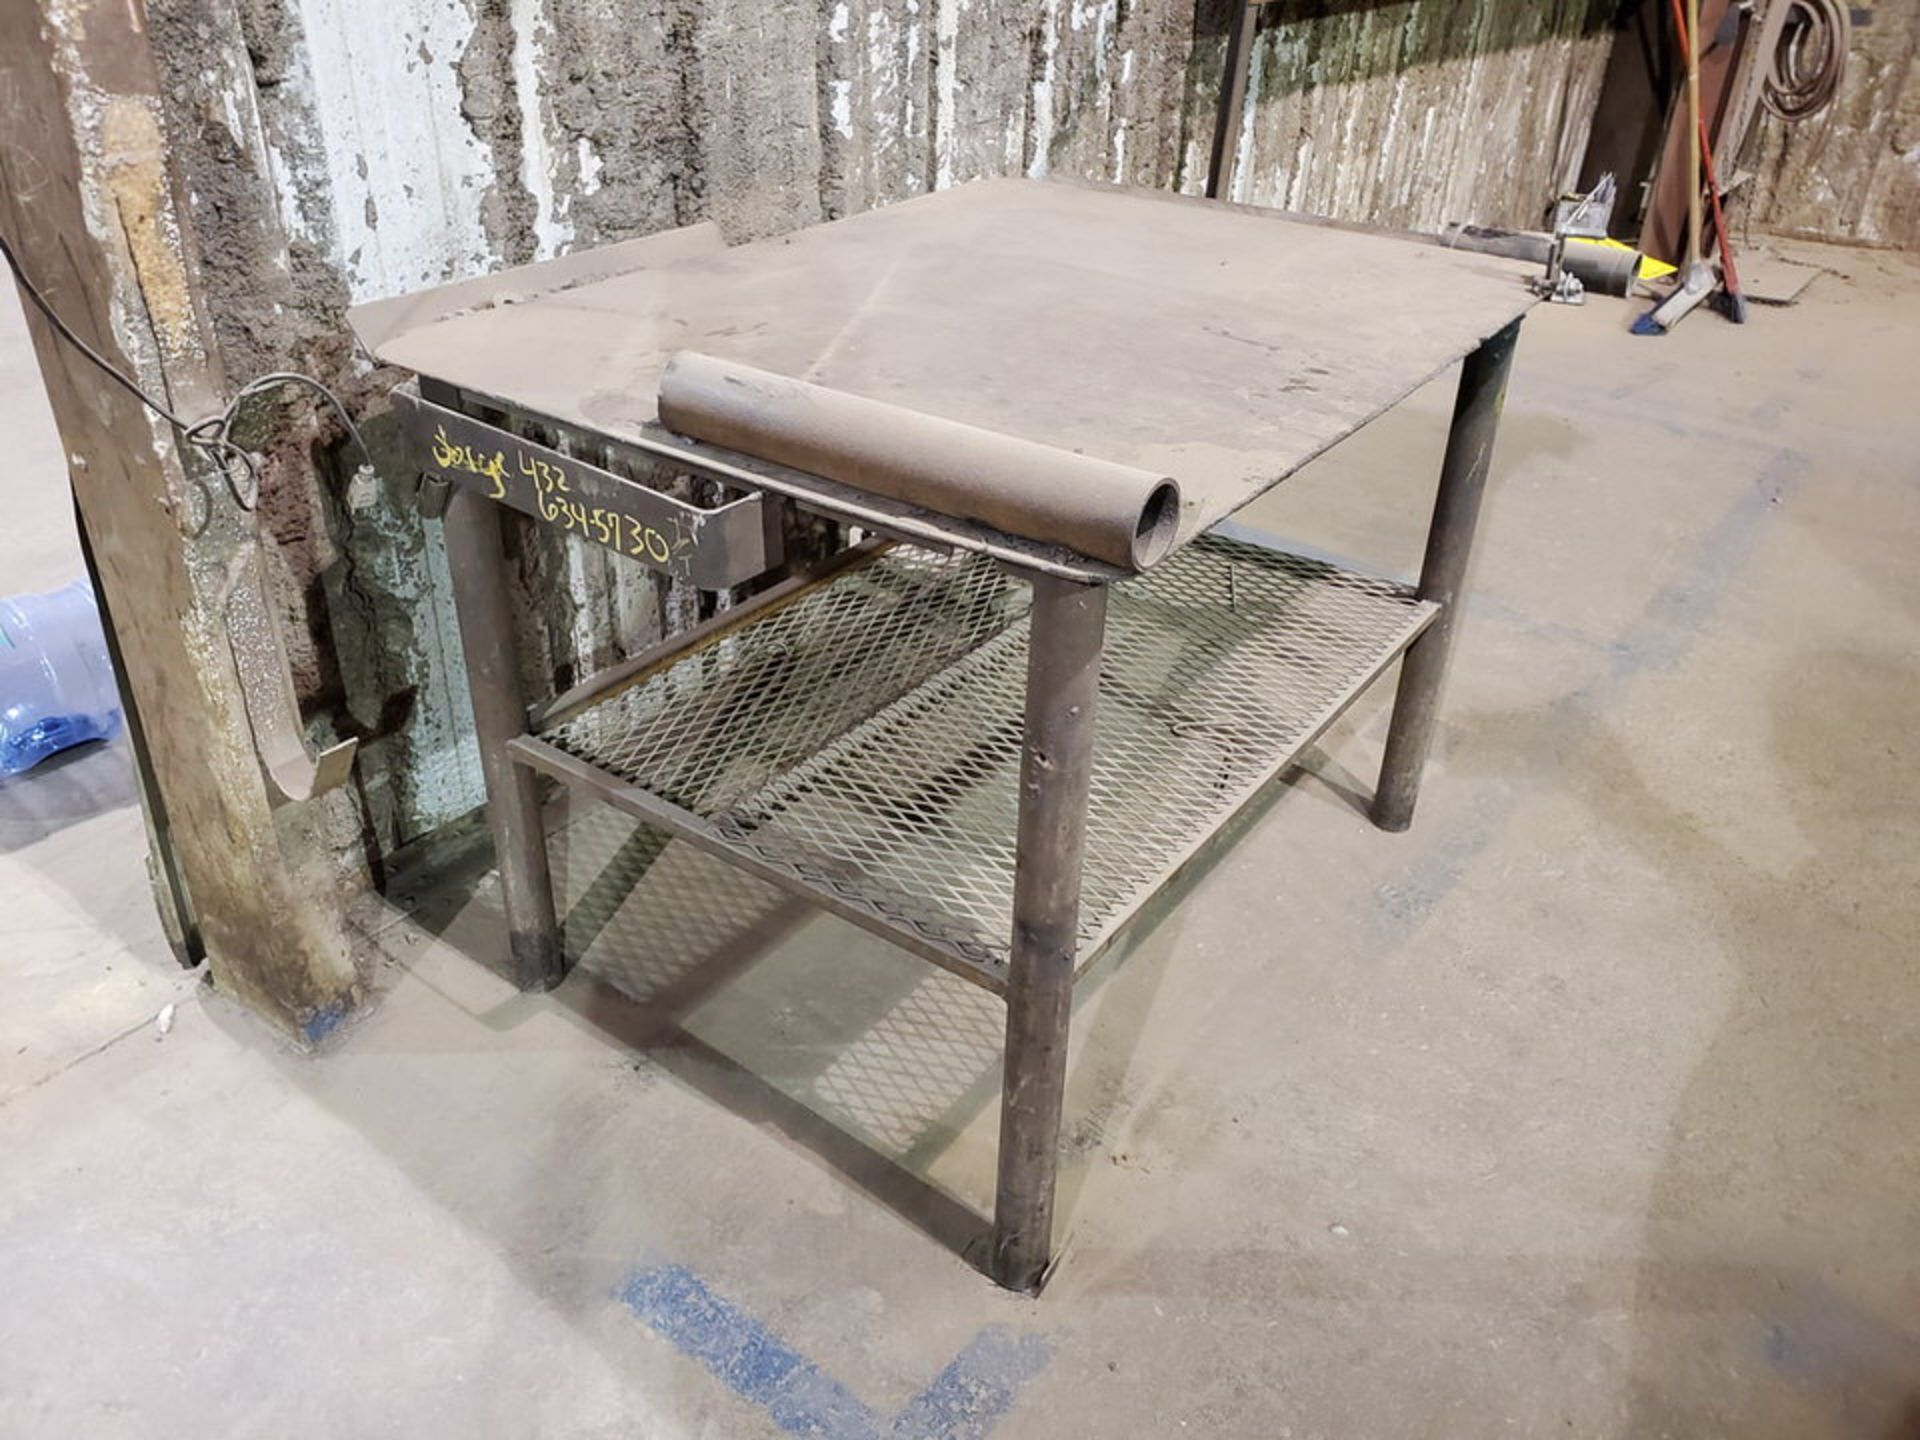 """Stl Welding Table 40"""" x 53"""" x 34""""H - Image 4 of 4"""